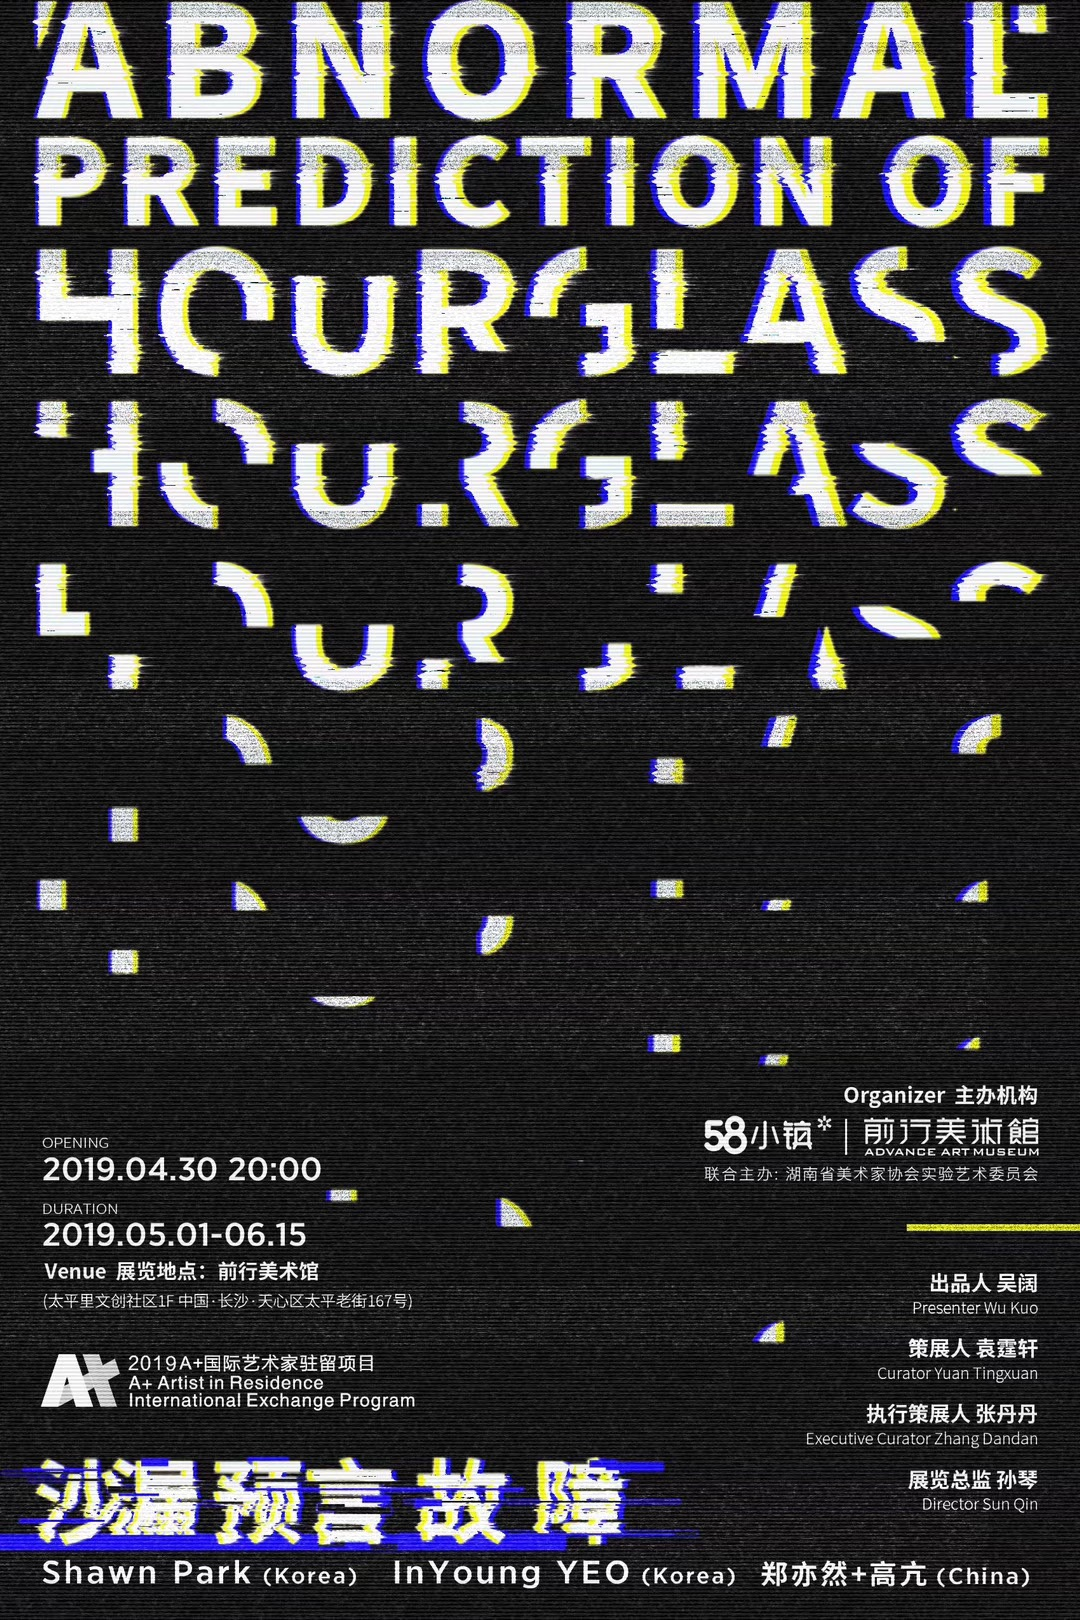 Exhibition 展覽: Abnormal Prediction of Hourglass 沙漏預言故障  Duration 展期: 05.01 - 06.15.2019  Venue 地點: Advance Museum 前行美術館